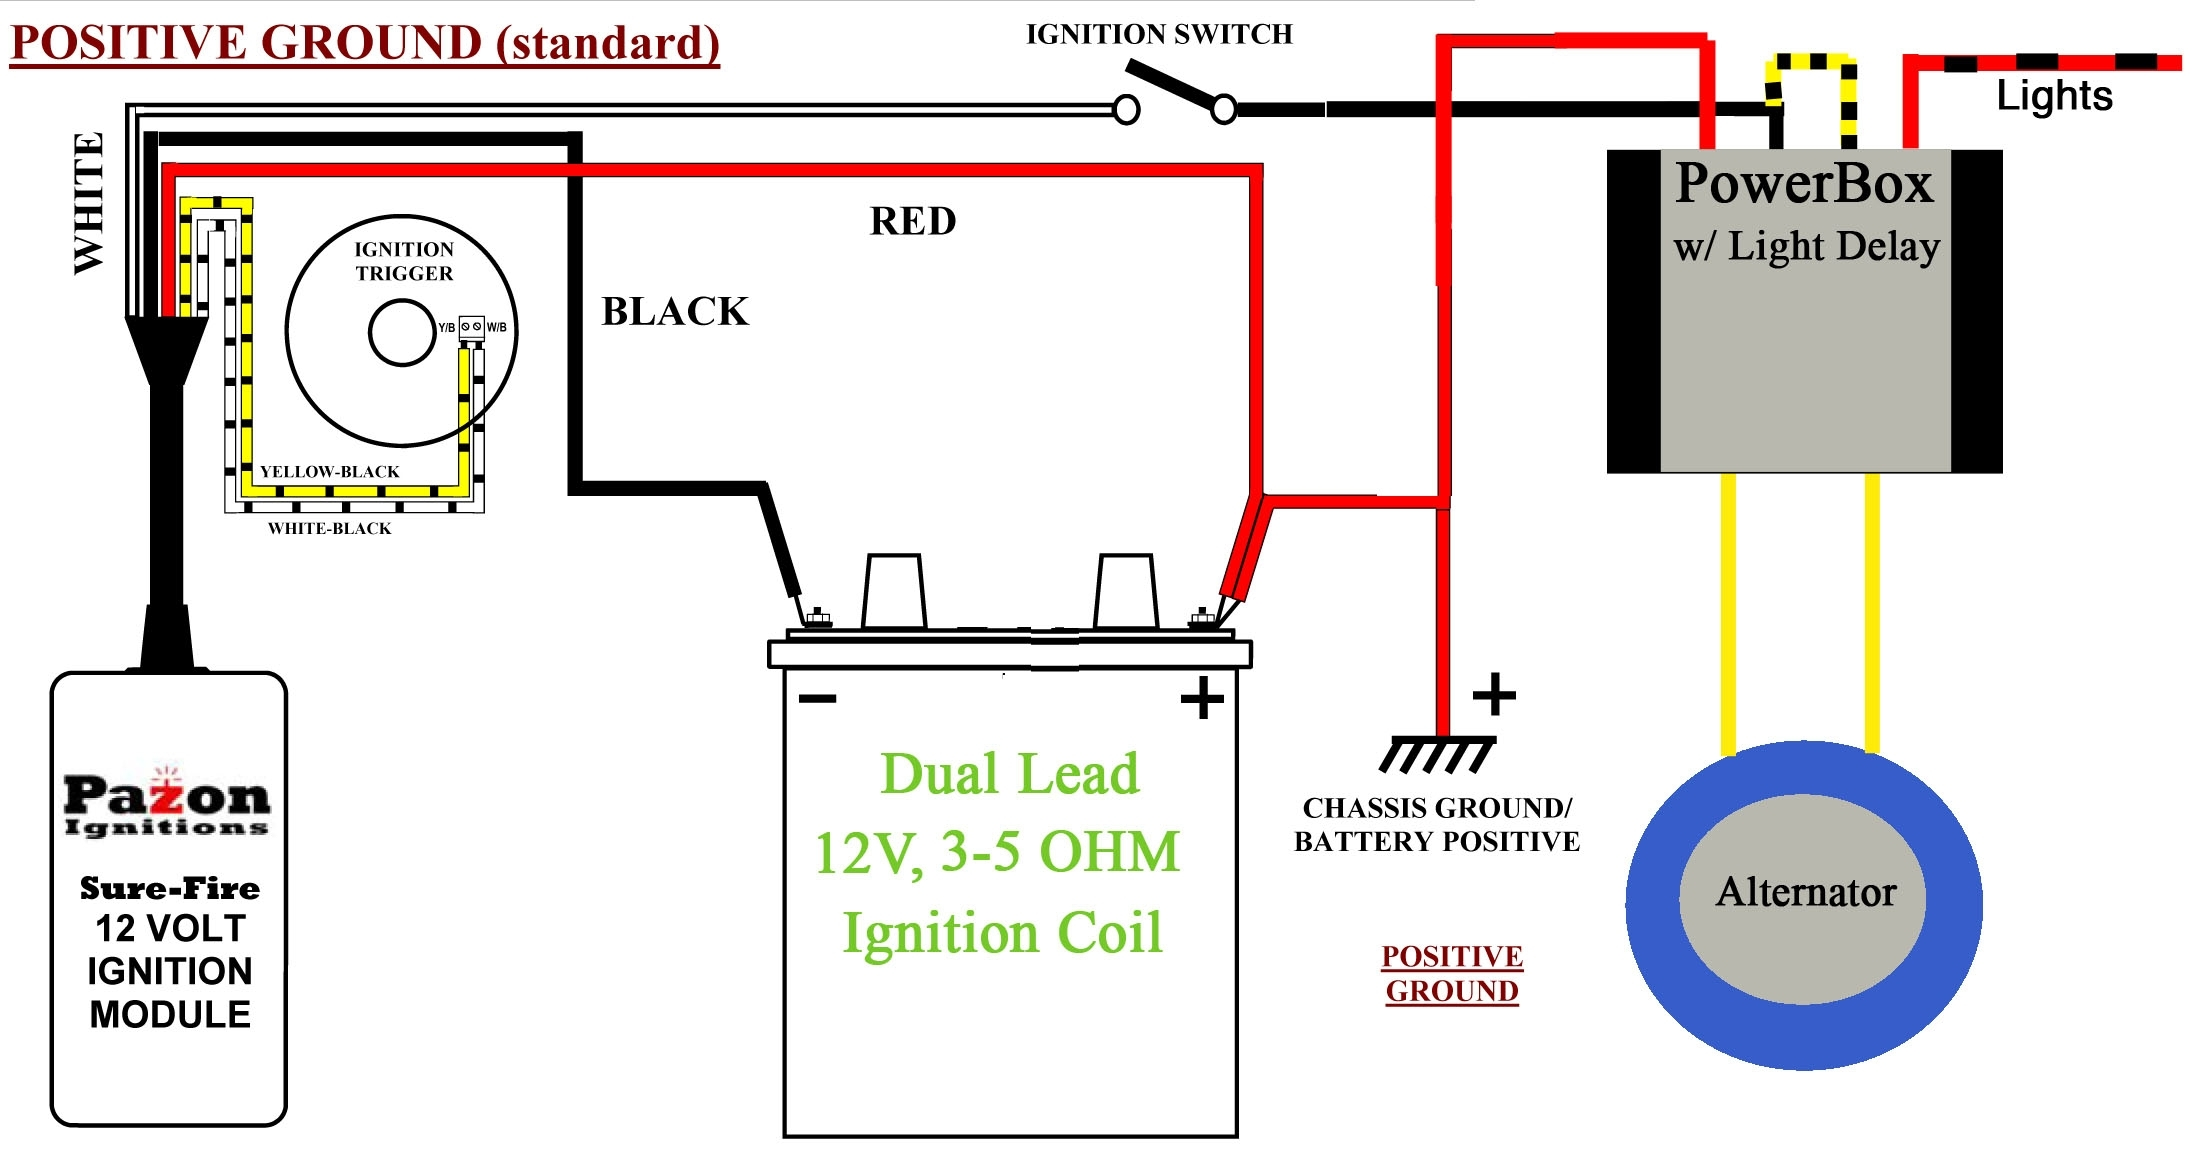 Wiring Diagram - Britbike Forum regarding 6 Volt Positive Ground Wiring Diagram